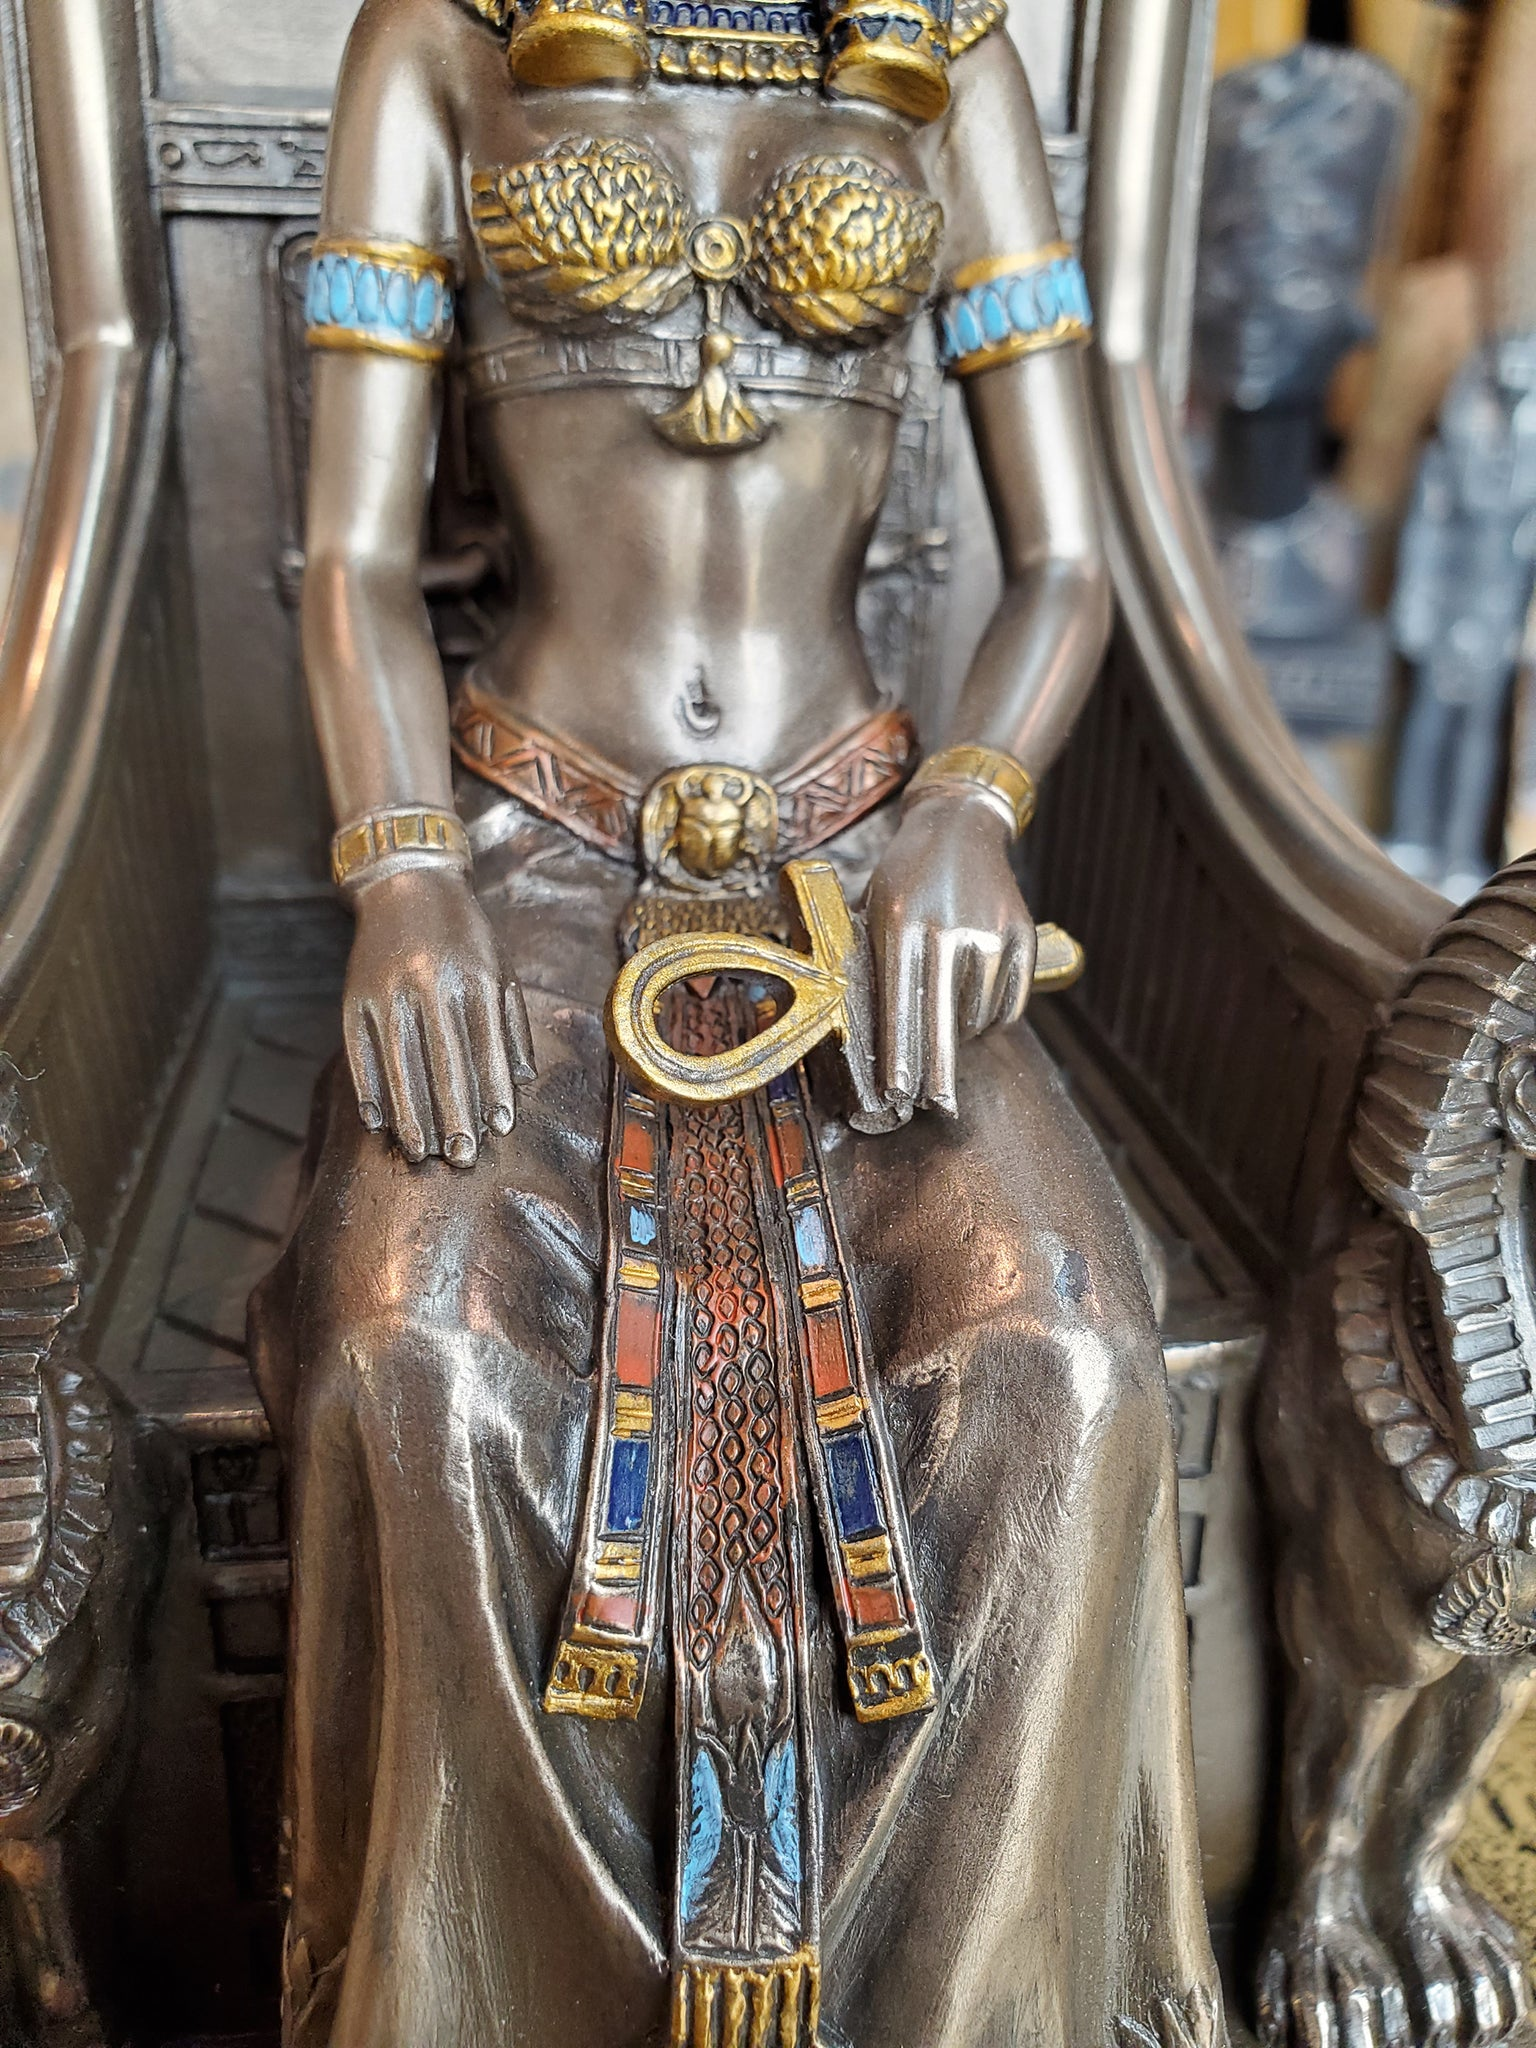 Sekhmet Goddess on Throne Statue